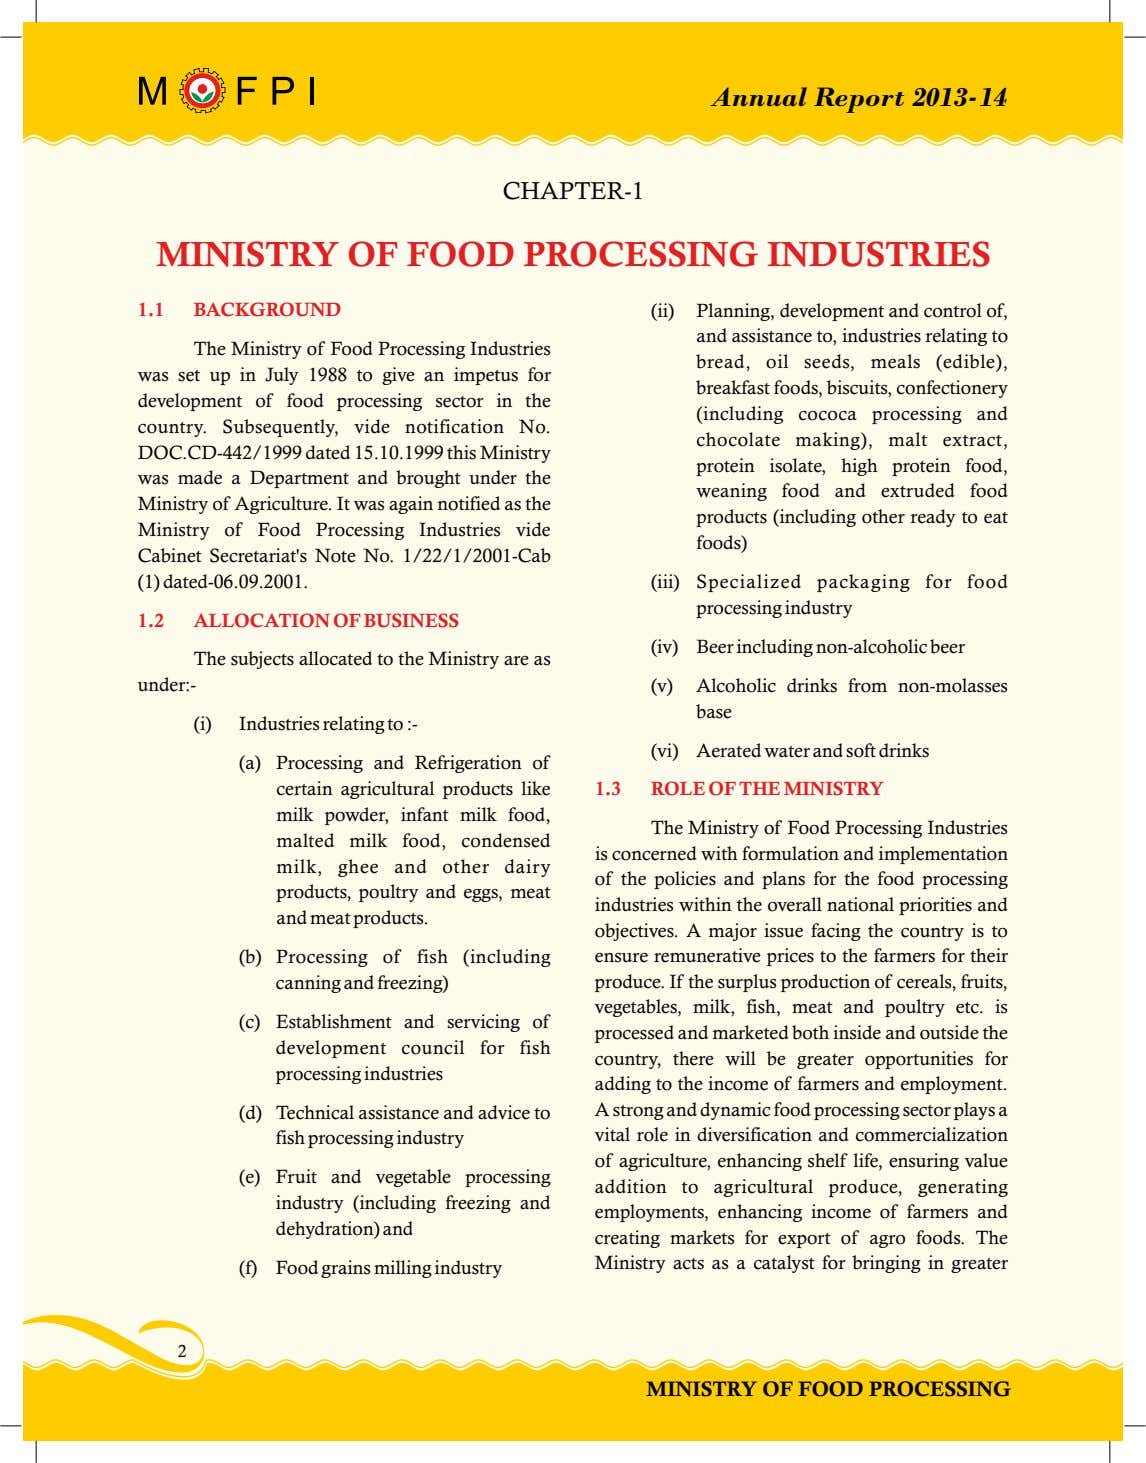 Annual Report 2013-14 CHAPTER-1 MINISTRY OF FOOD PROCESSING INDUSTRIES 1.1 BACKGROUND (ii) The Ministry of